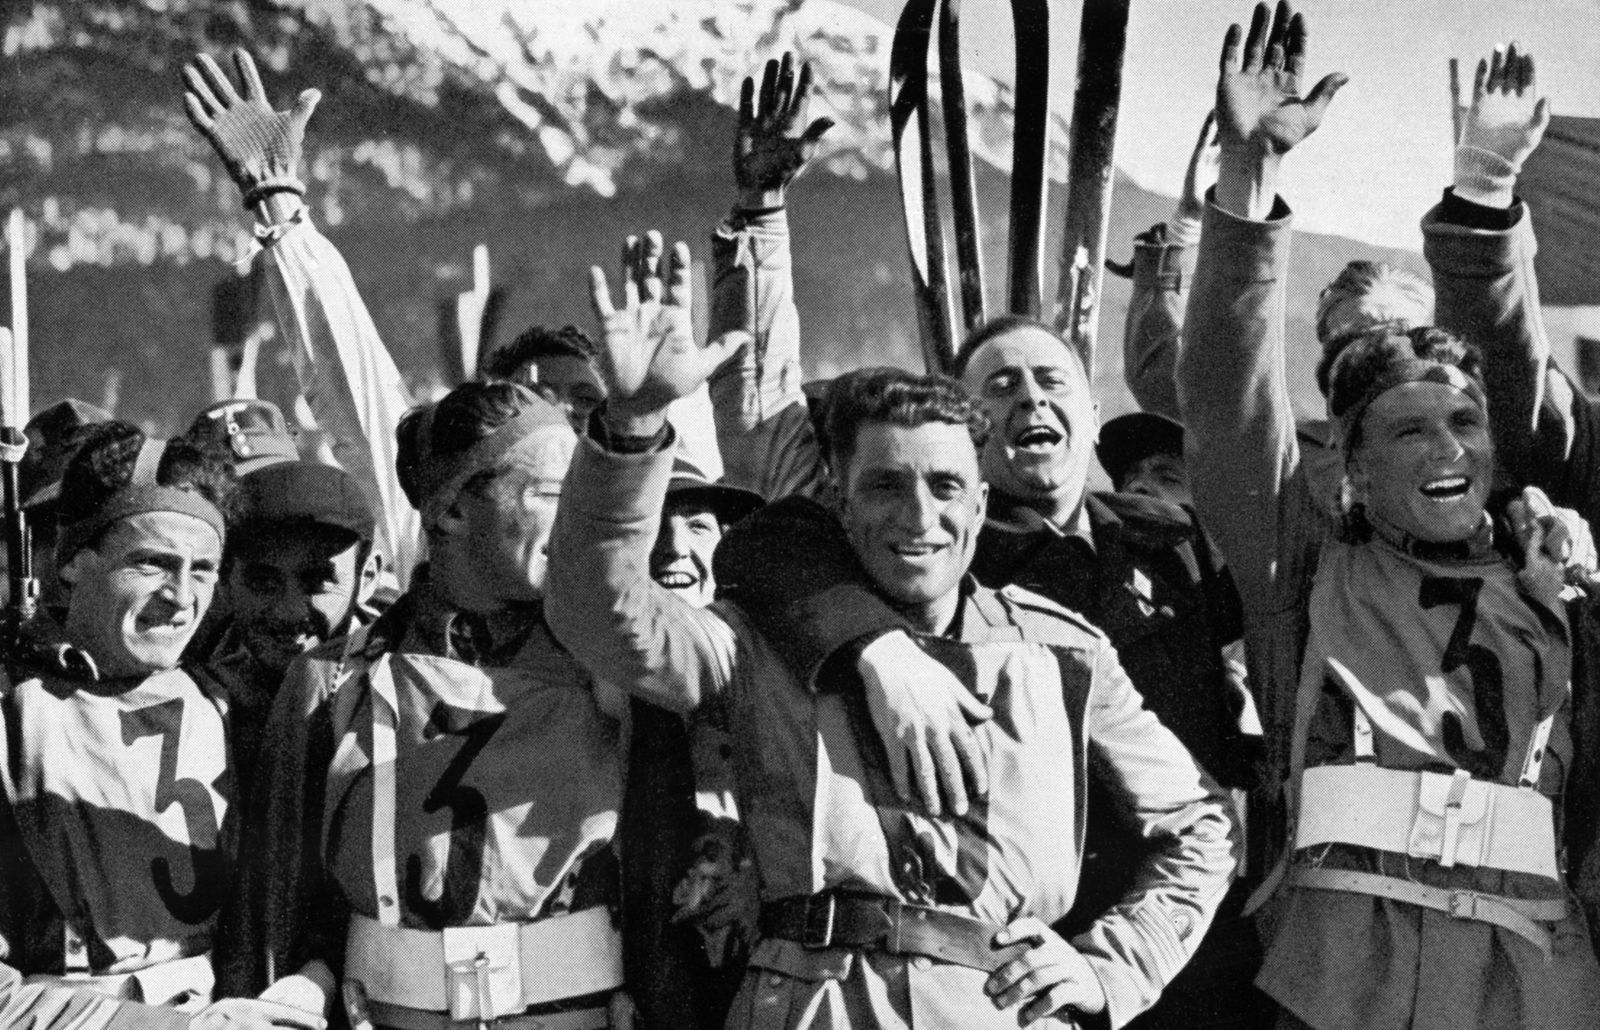 The Italian crew jubilant and pleased with their victory in the military ski patrol. Â PUBLICATIONxINxGERxSUIxAUTxONLY